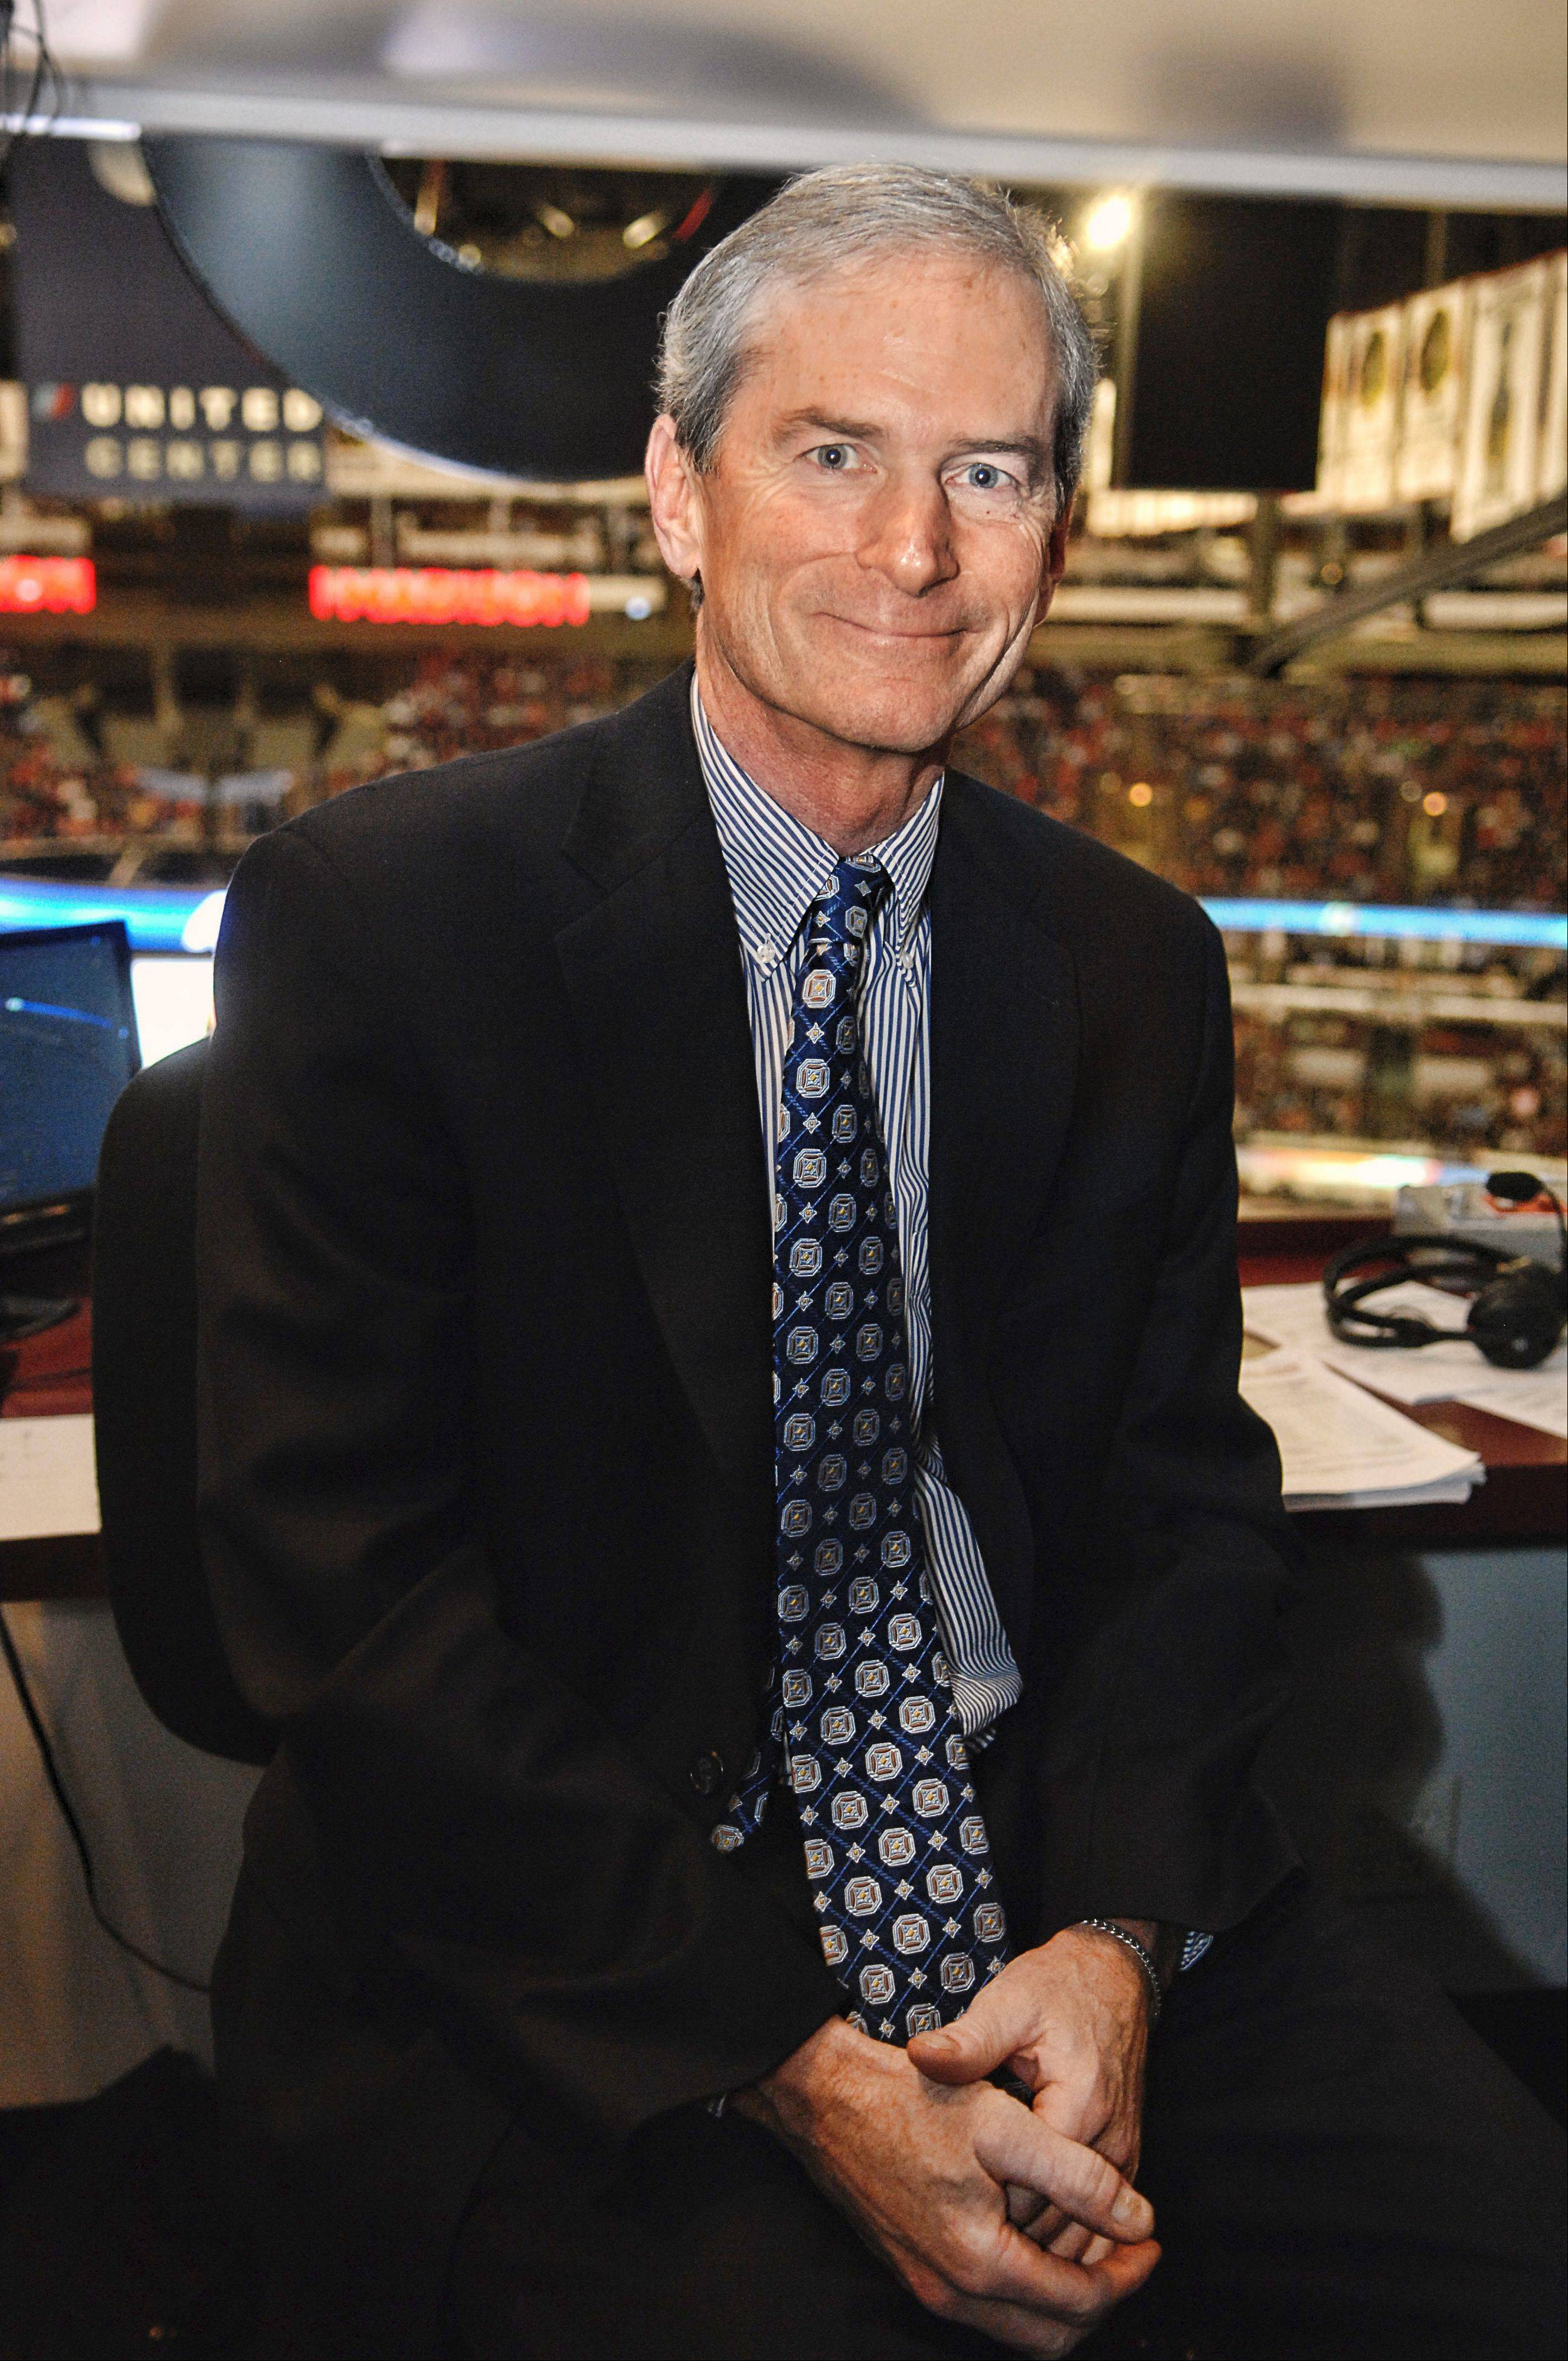 Longtime broadcaster Pat Foley insists he's the luckiest man in Chicago to be working in his hometown with his favorite sport and the best team in the NHL. On Friday, the Hawks will honor Foley for his 30 years with the team.